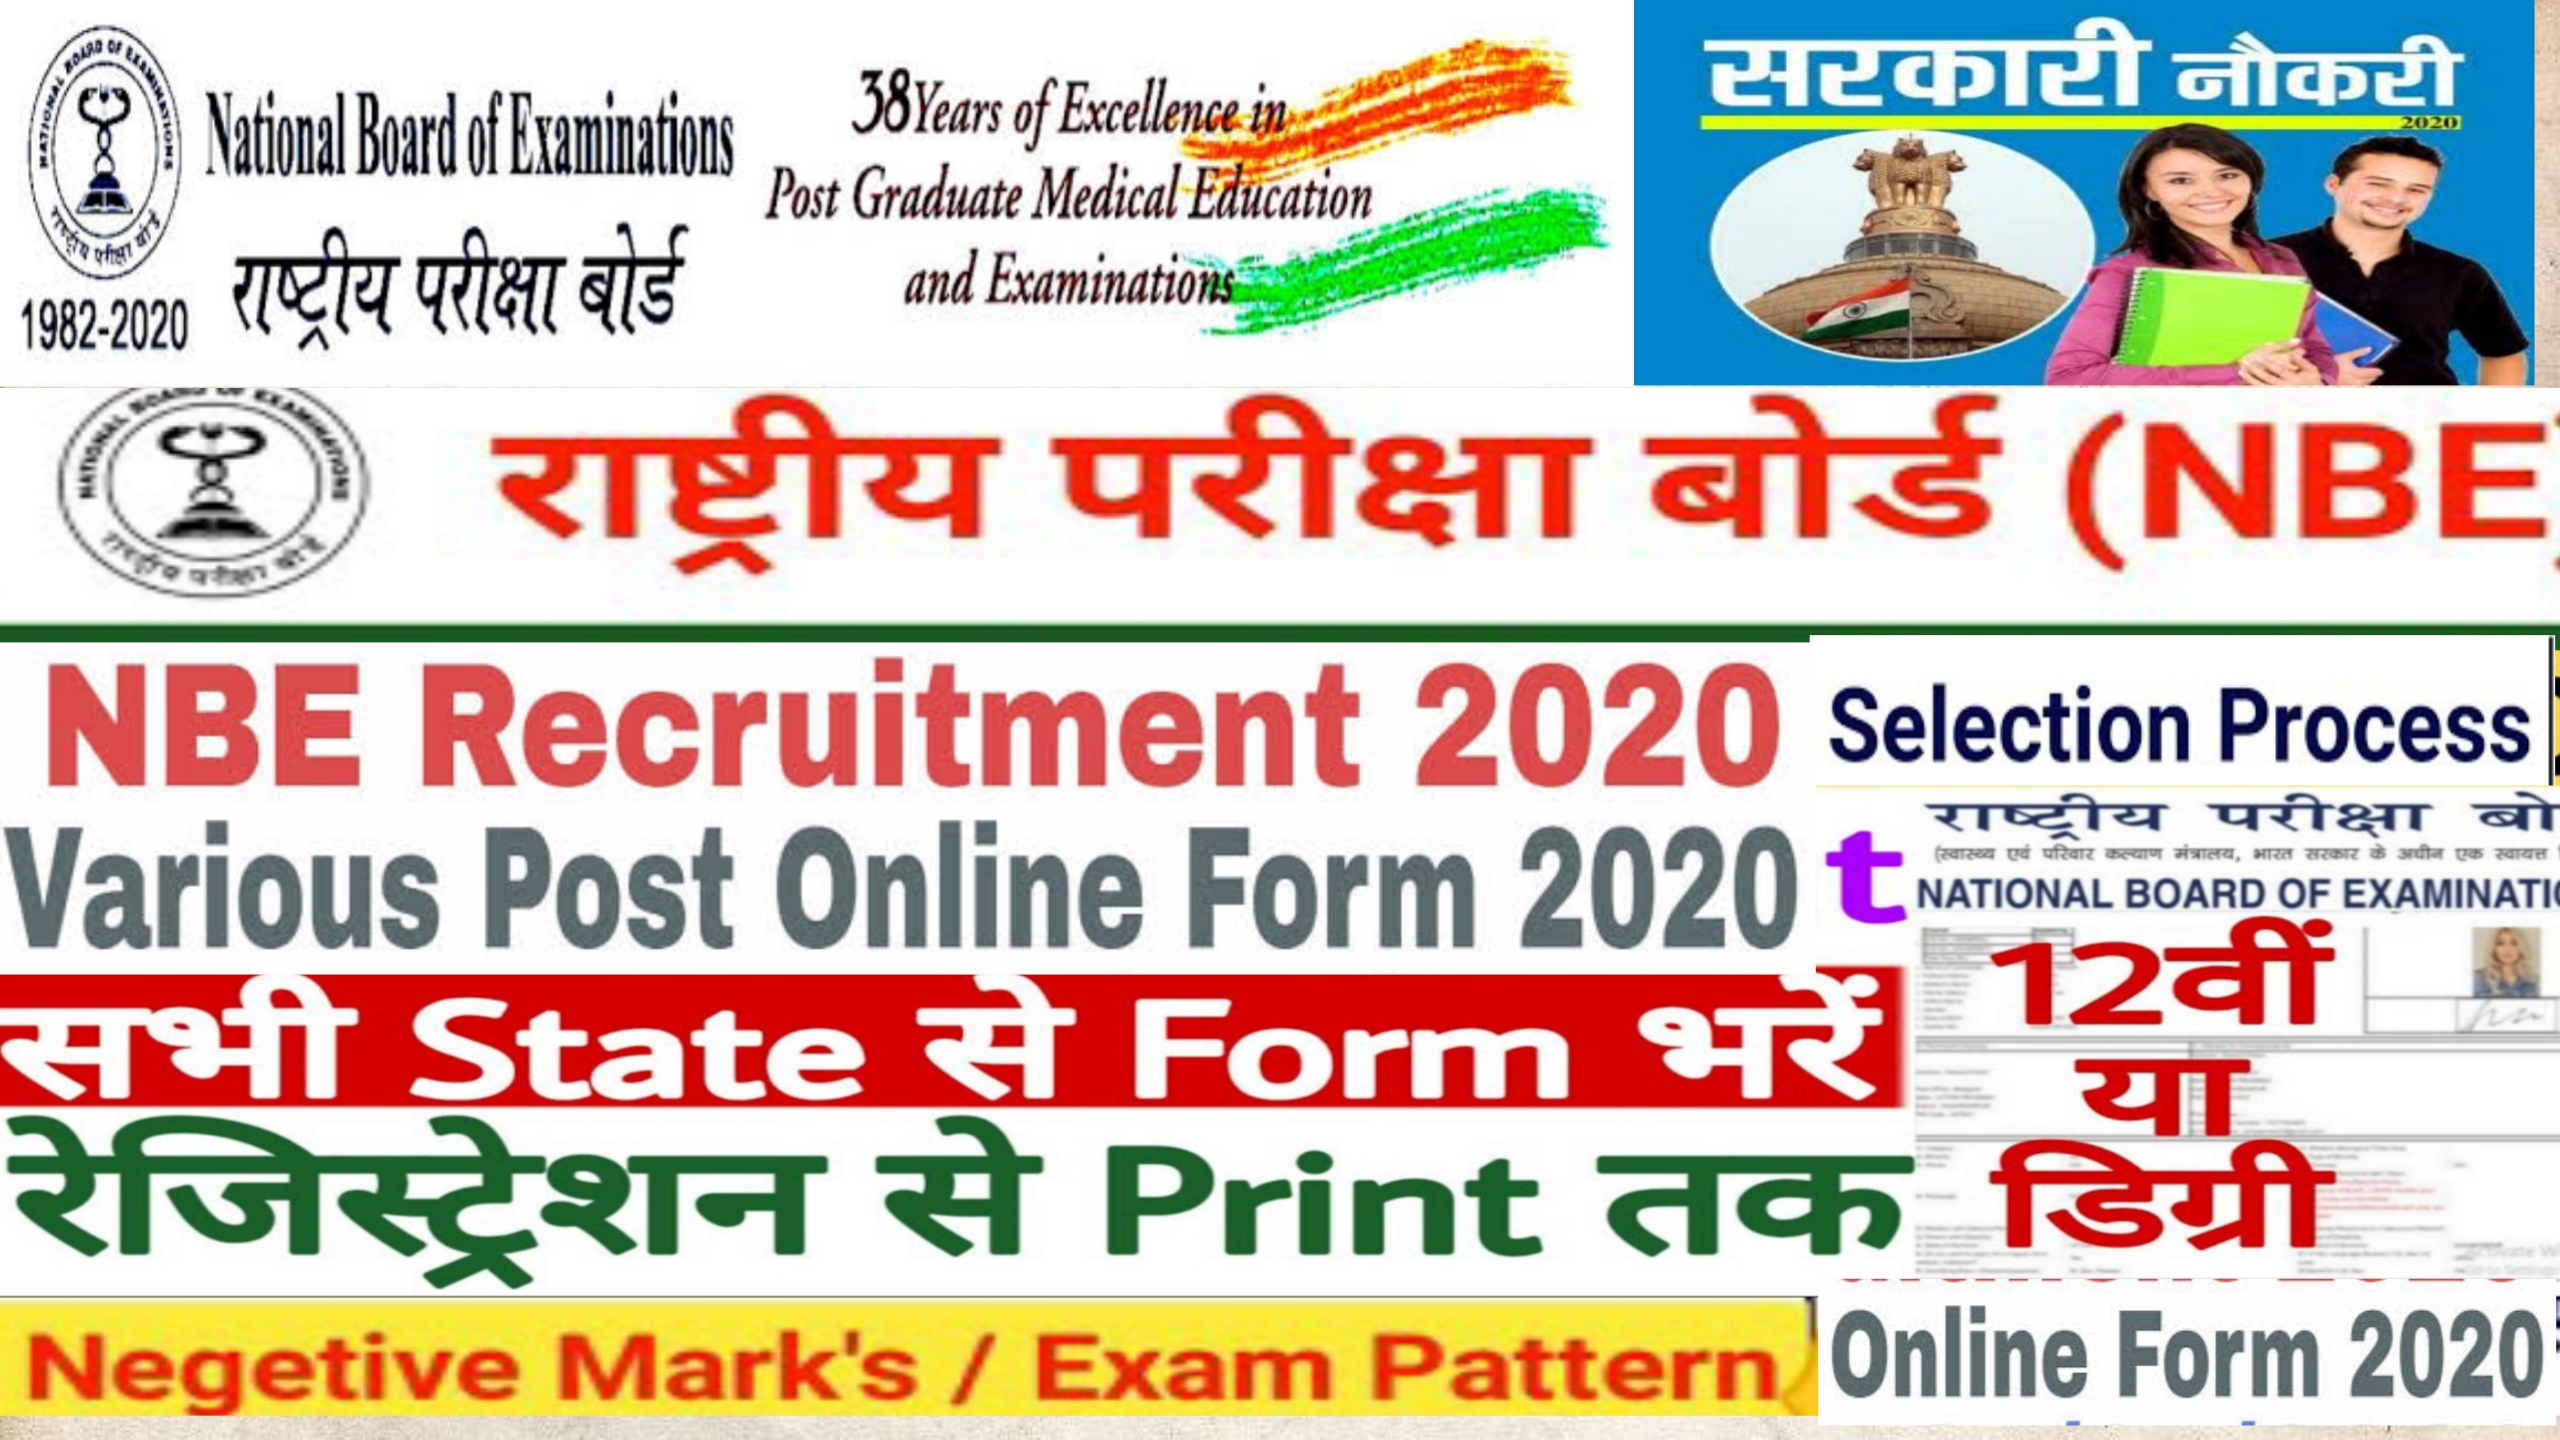 NBE Various Post Online Form 2020